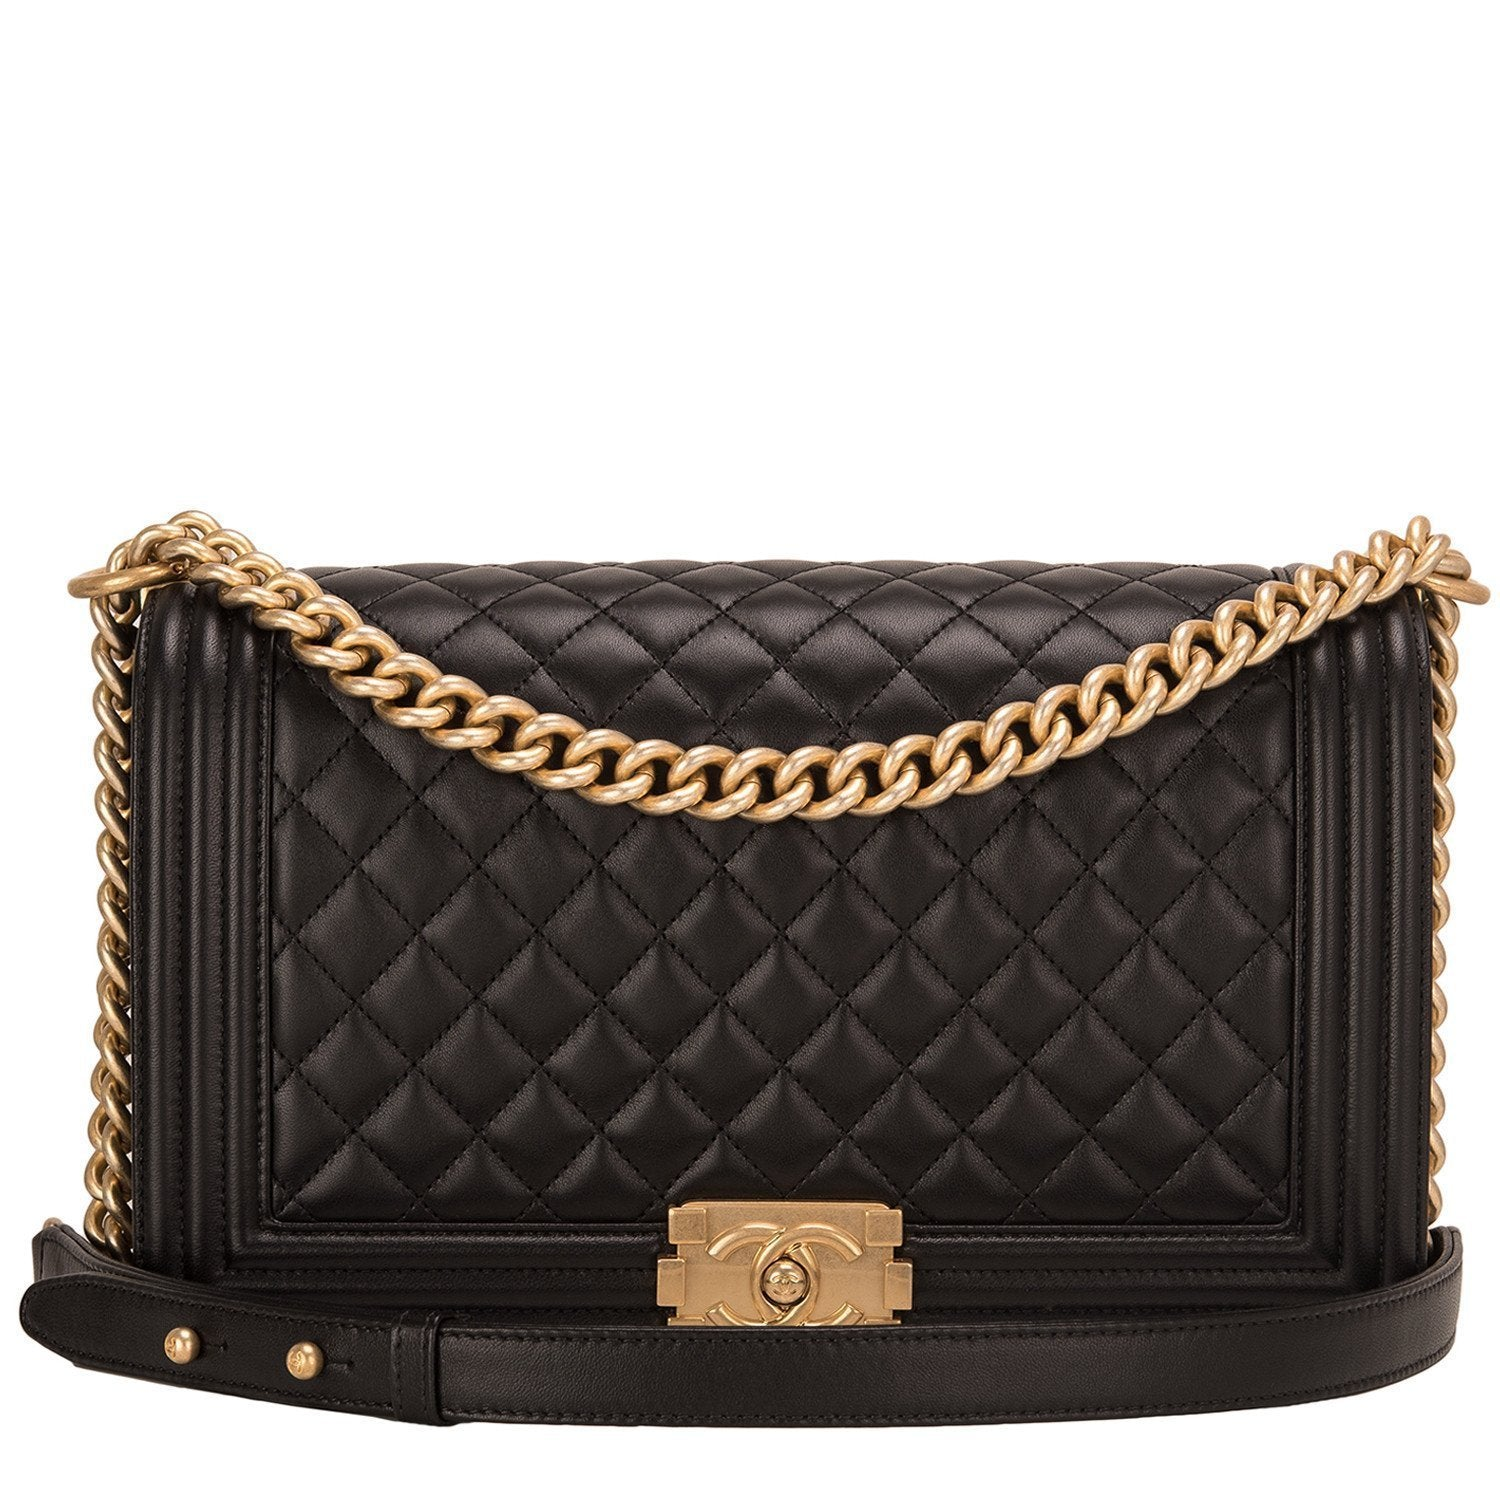 Chanel Black Quilted Lambskin New Medium Boy Bag Handbags